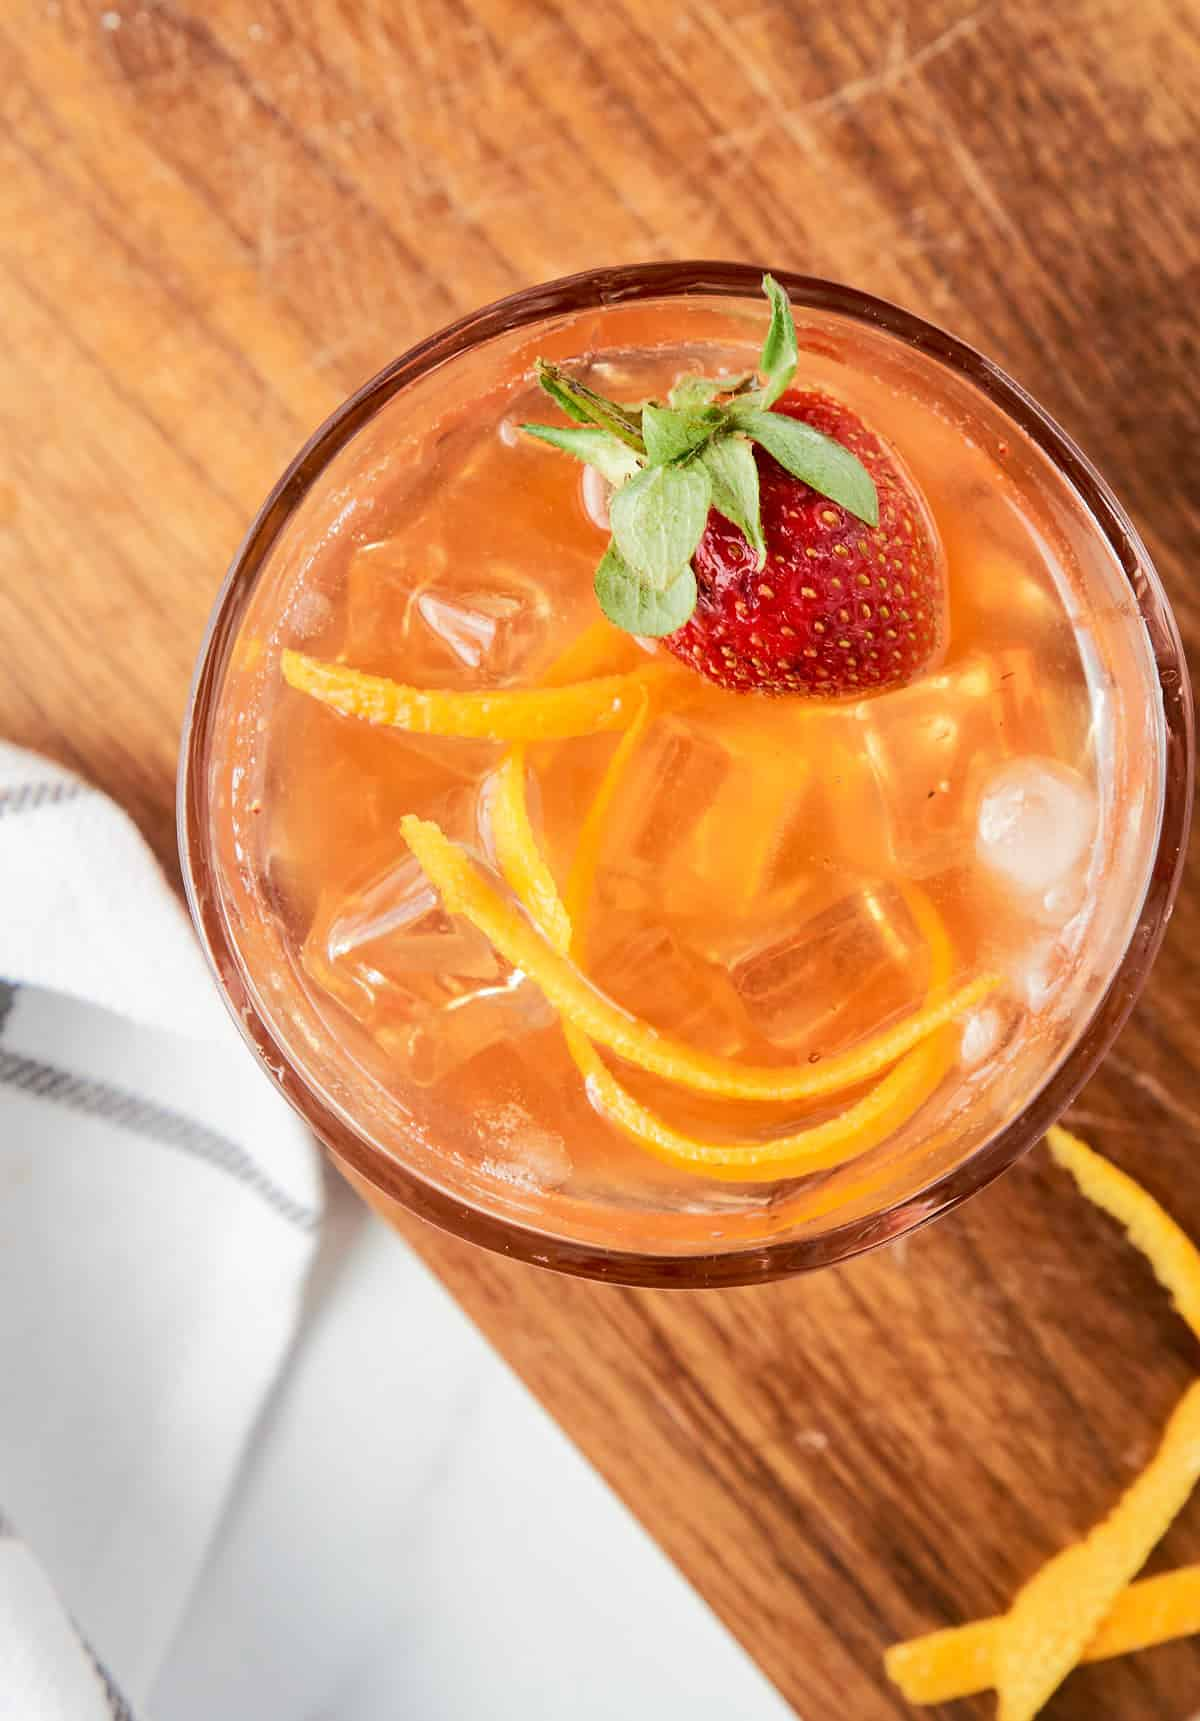 overhead view of old fashioned cocktail with orange peel and strawberry on top